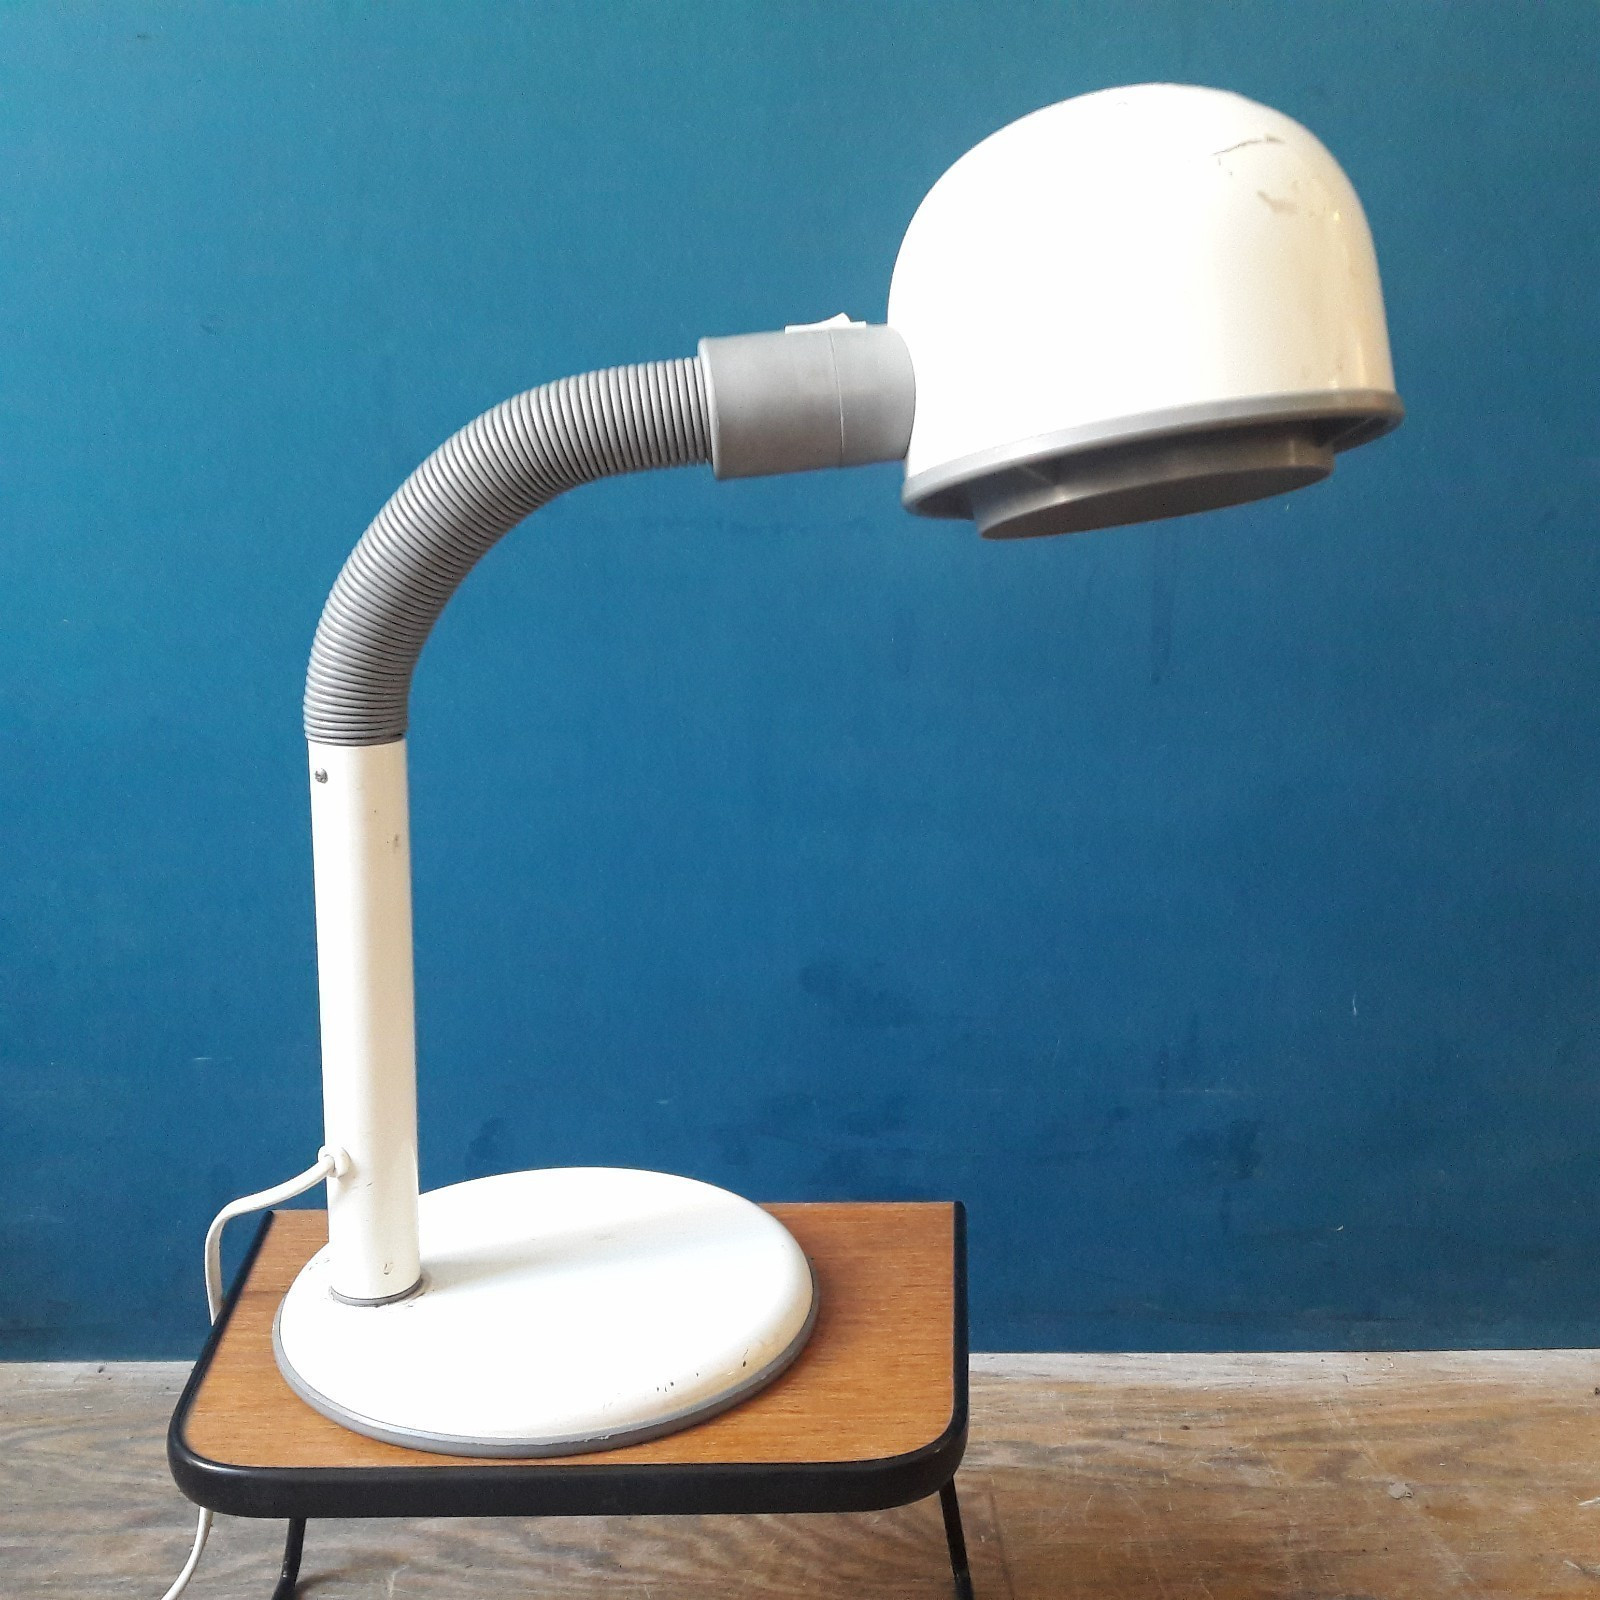 Retro bordlampe | FINN.no